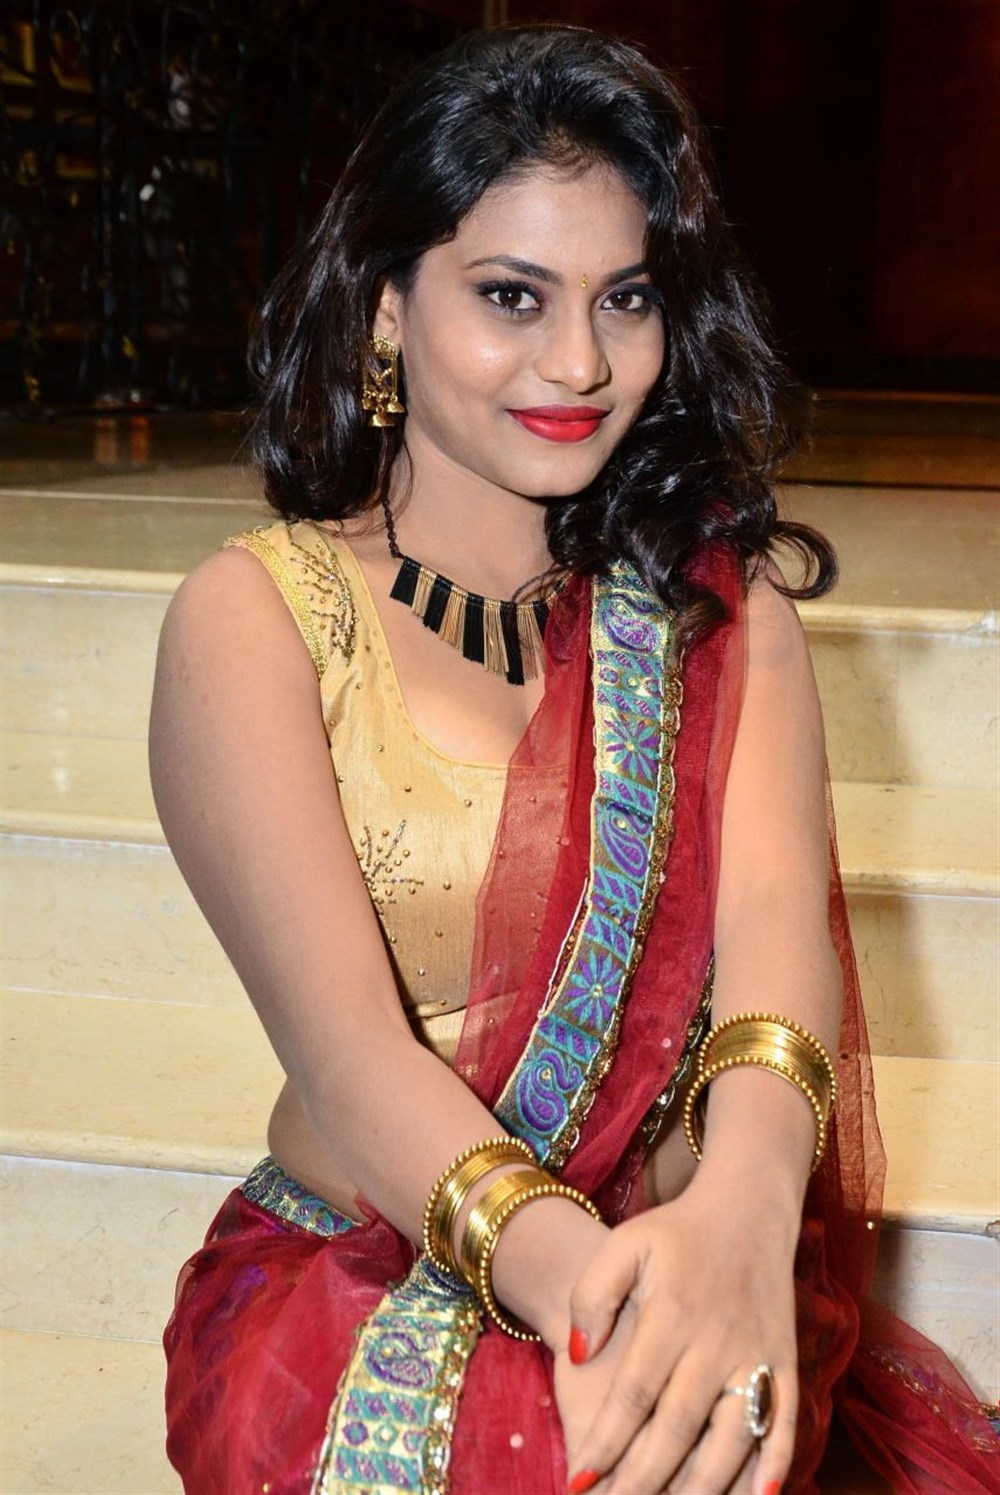 Priya Augustin Looks Stunning in Sleeveless Choli and Red Saree